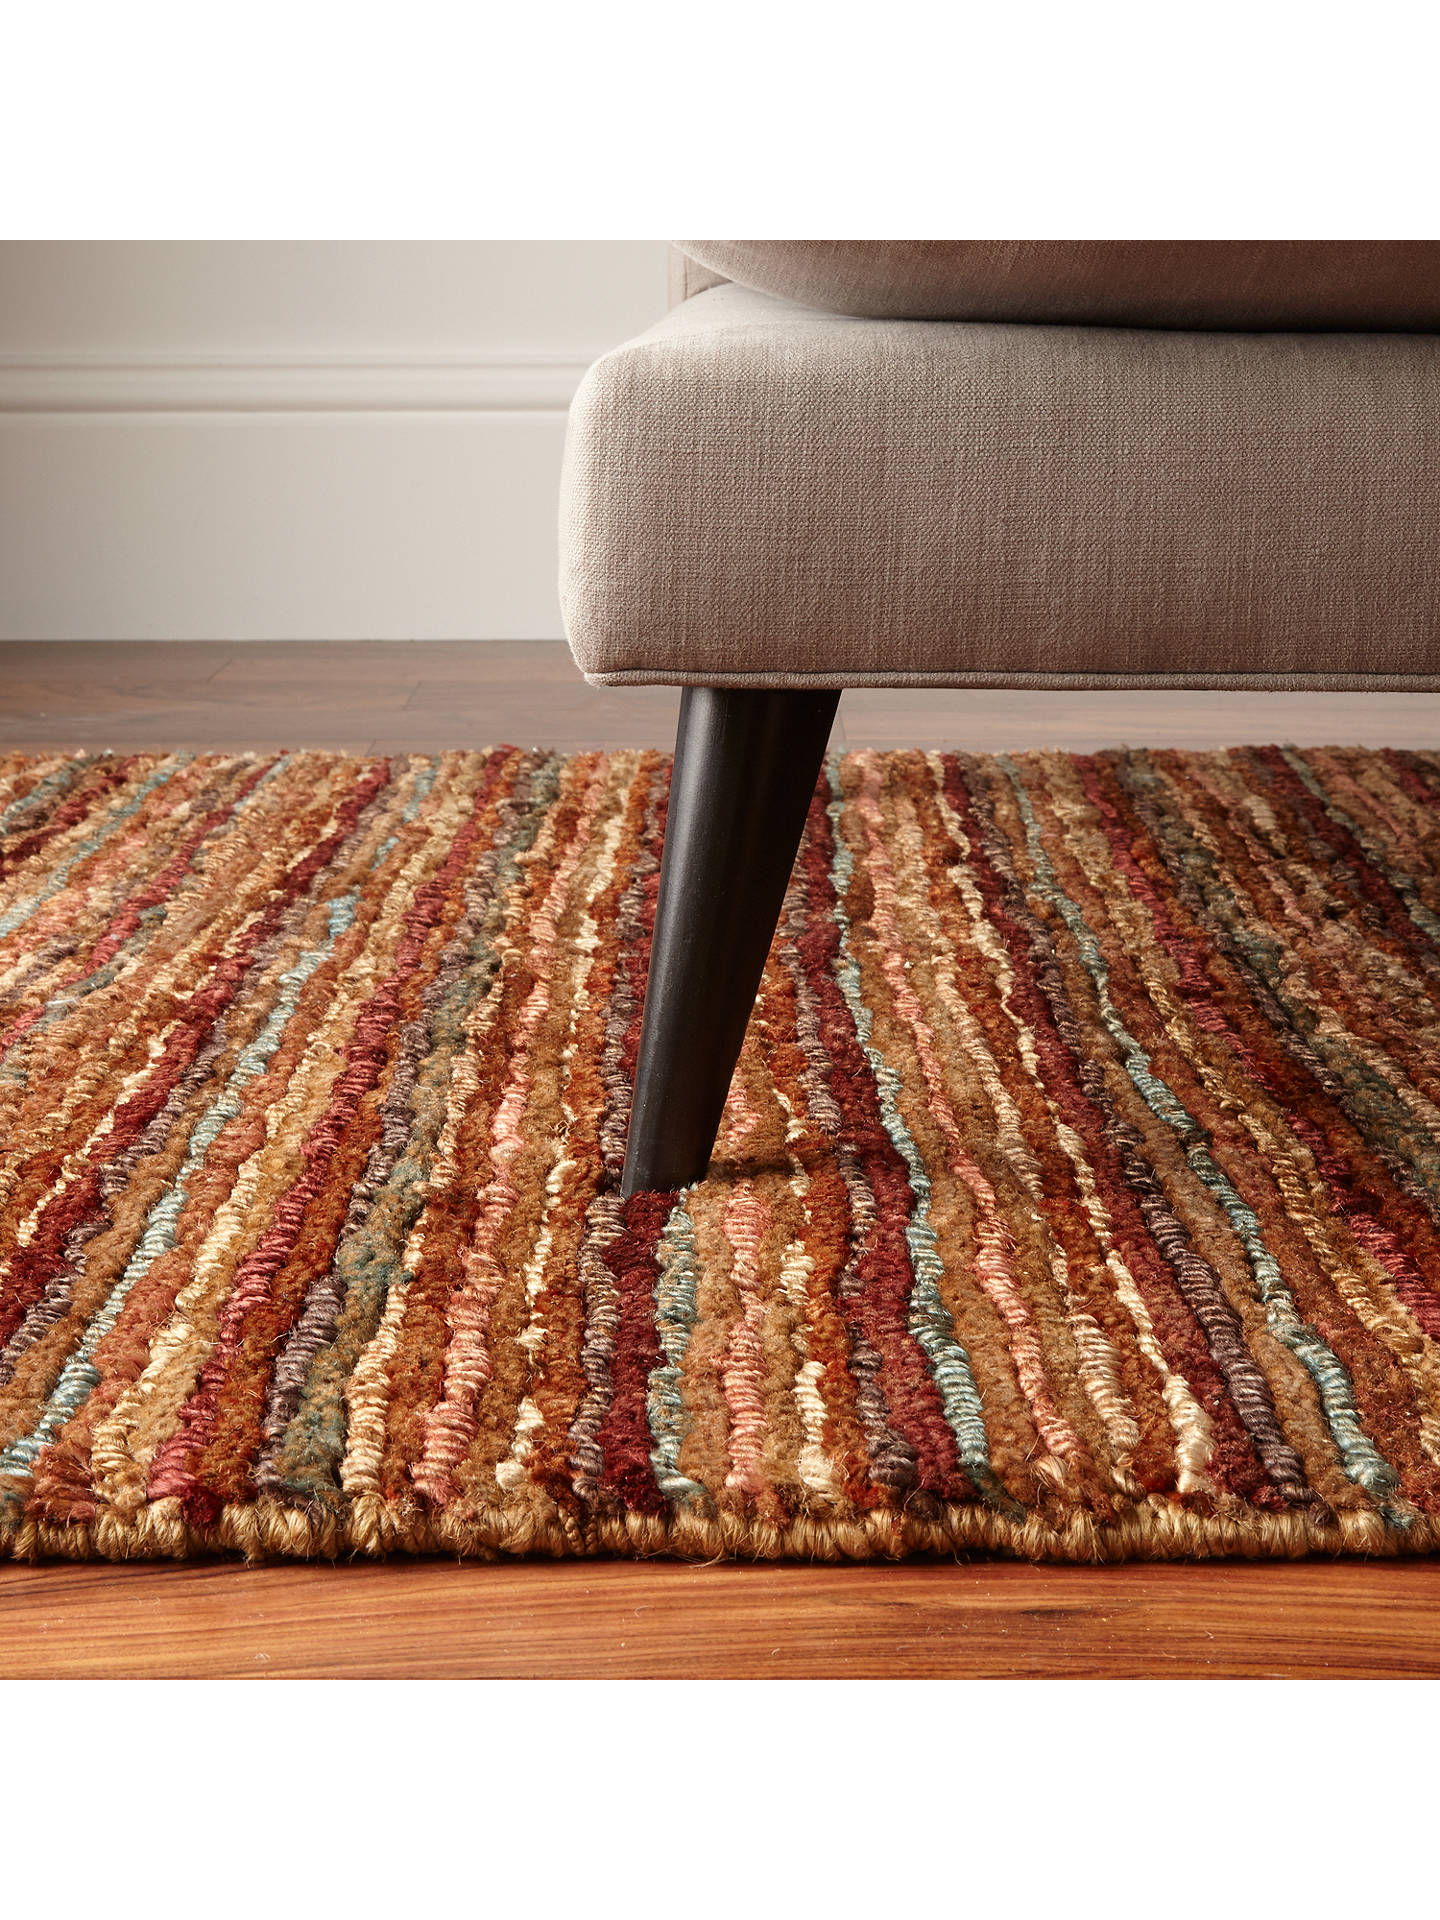 John Lewis Partners Rustic Jute Rug At